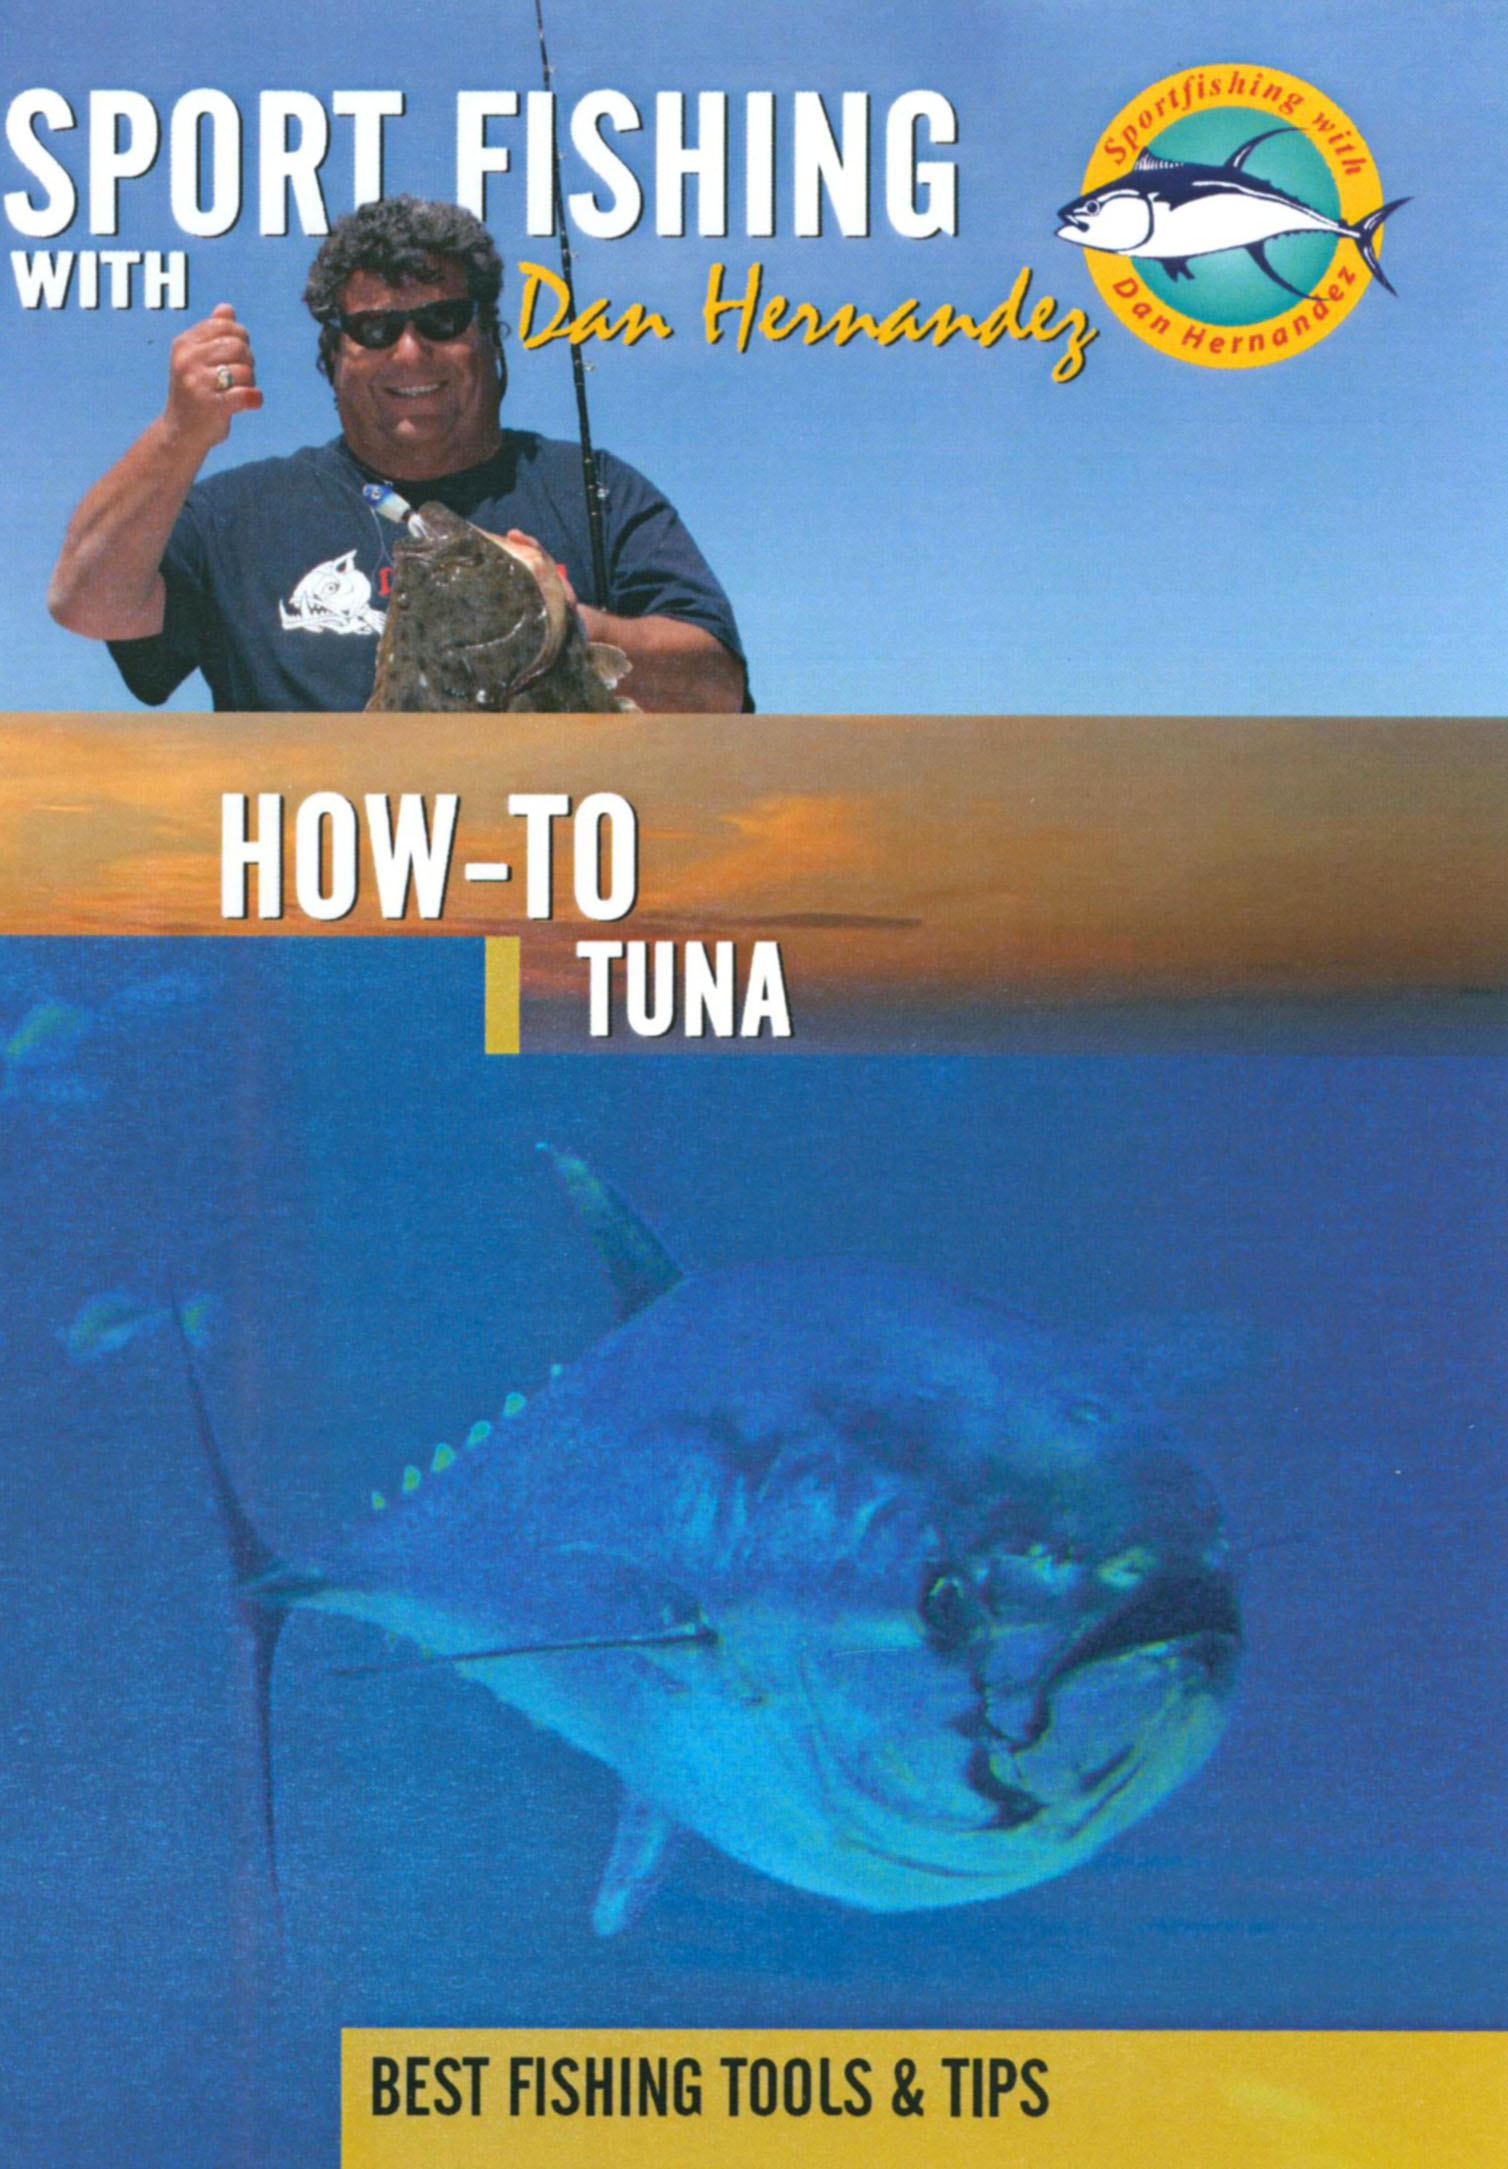 Sport Fishing With Dan Hernandez: How-To Tuna